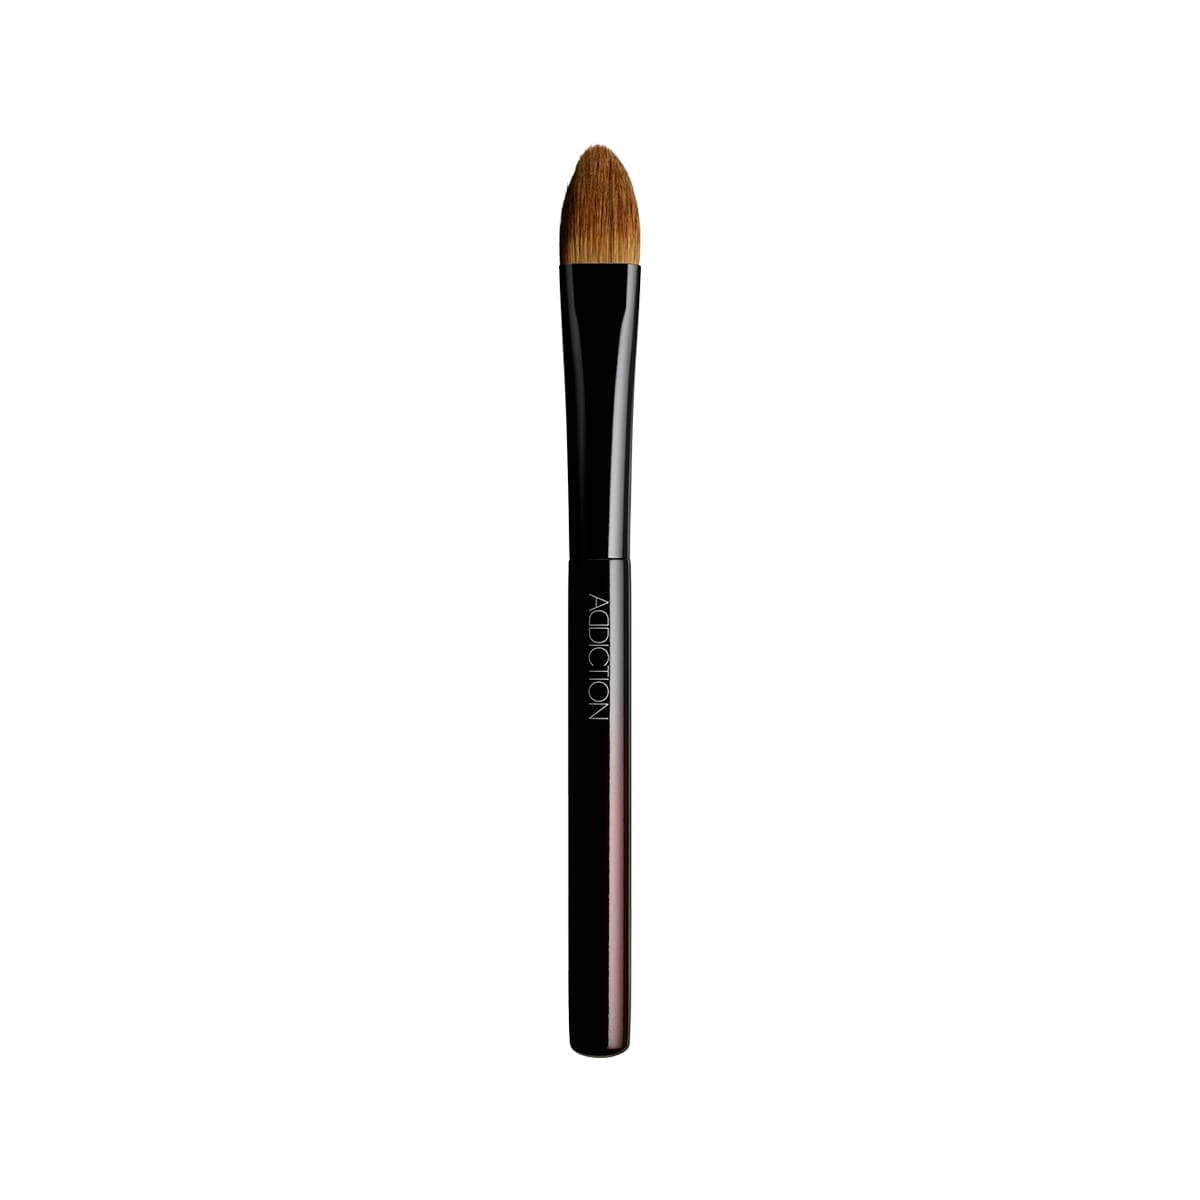 EYESHADOW BRUSH P